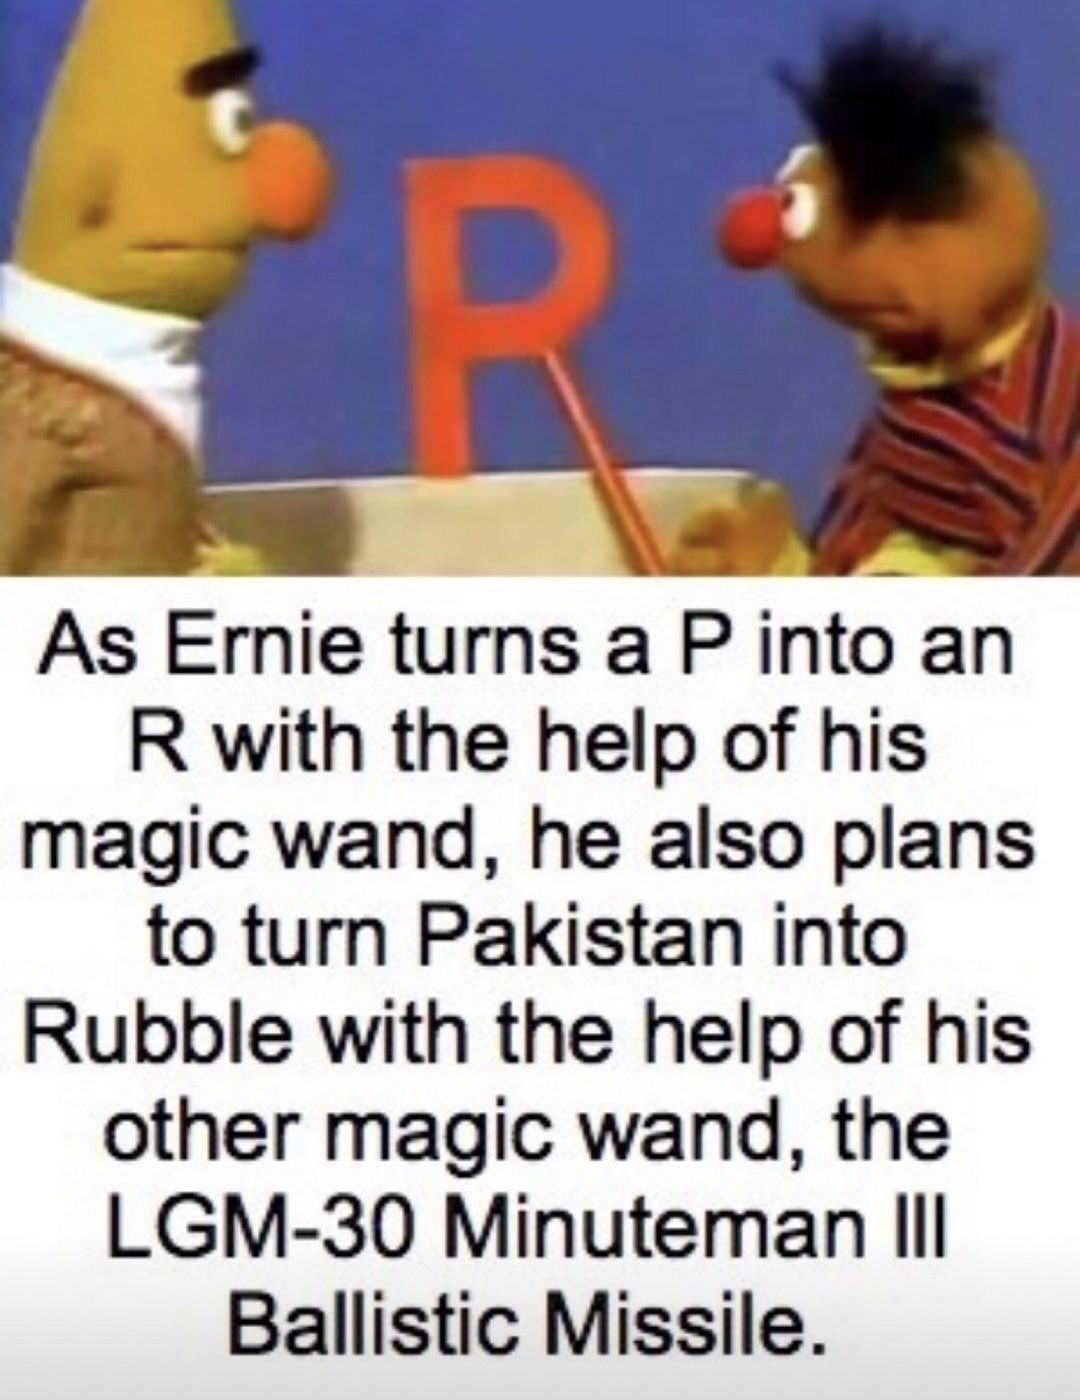 Ernie been plotting